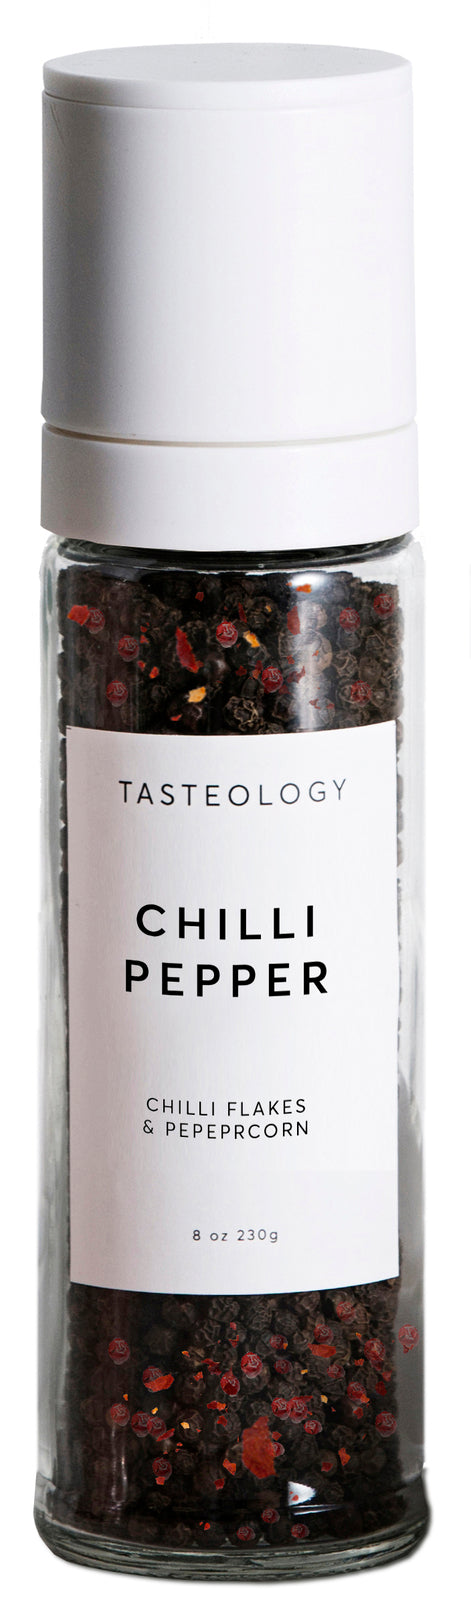 Tasteology Chilli Pepper